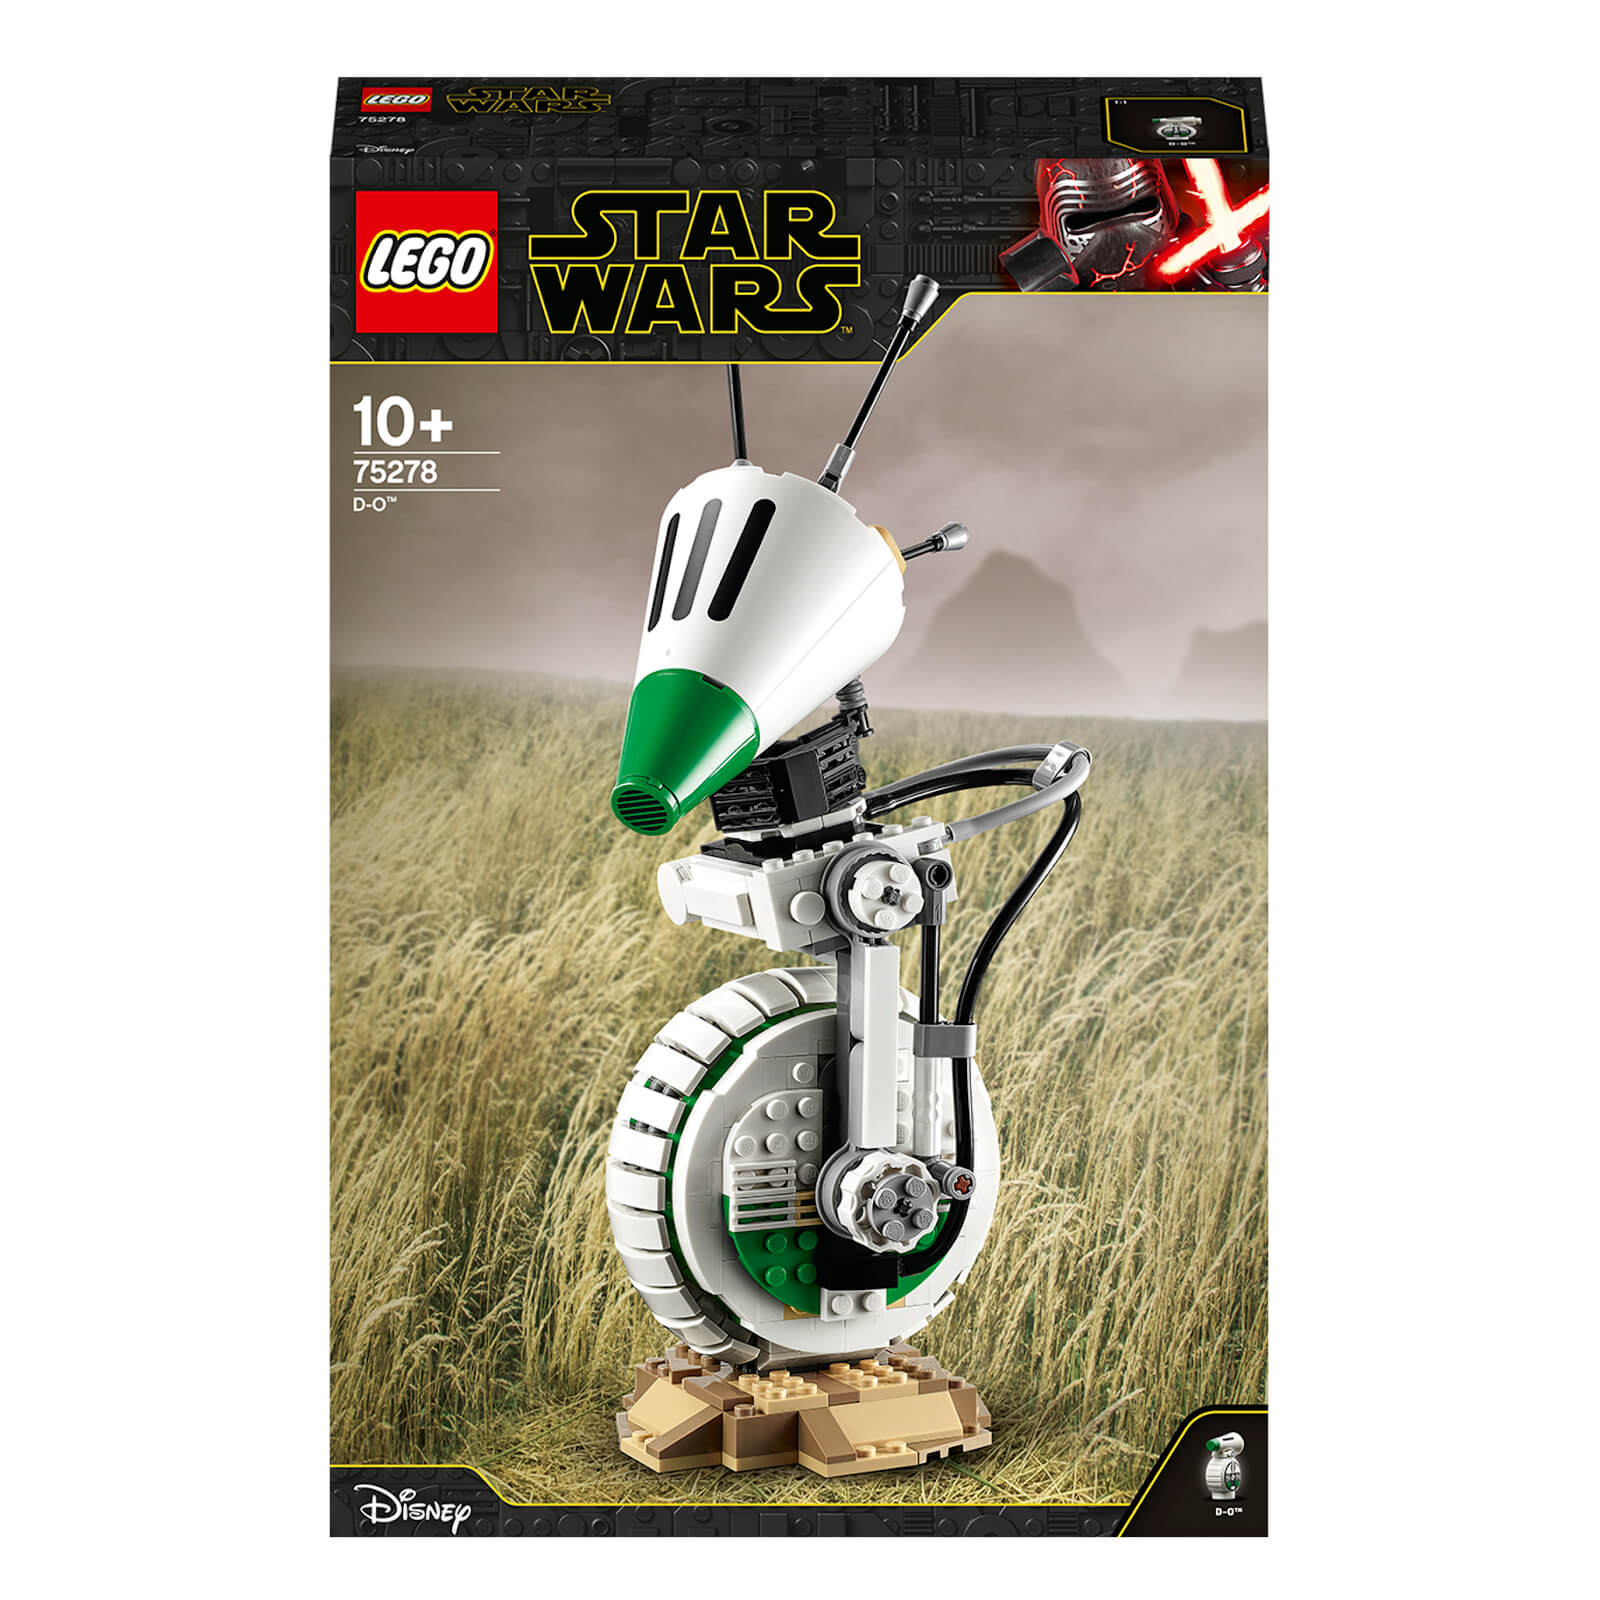 Image of LEGO Star Wars: D-O Collectible Droid Building Set (75278)